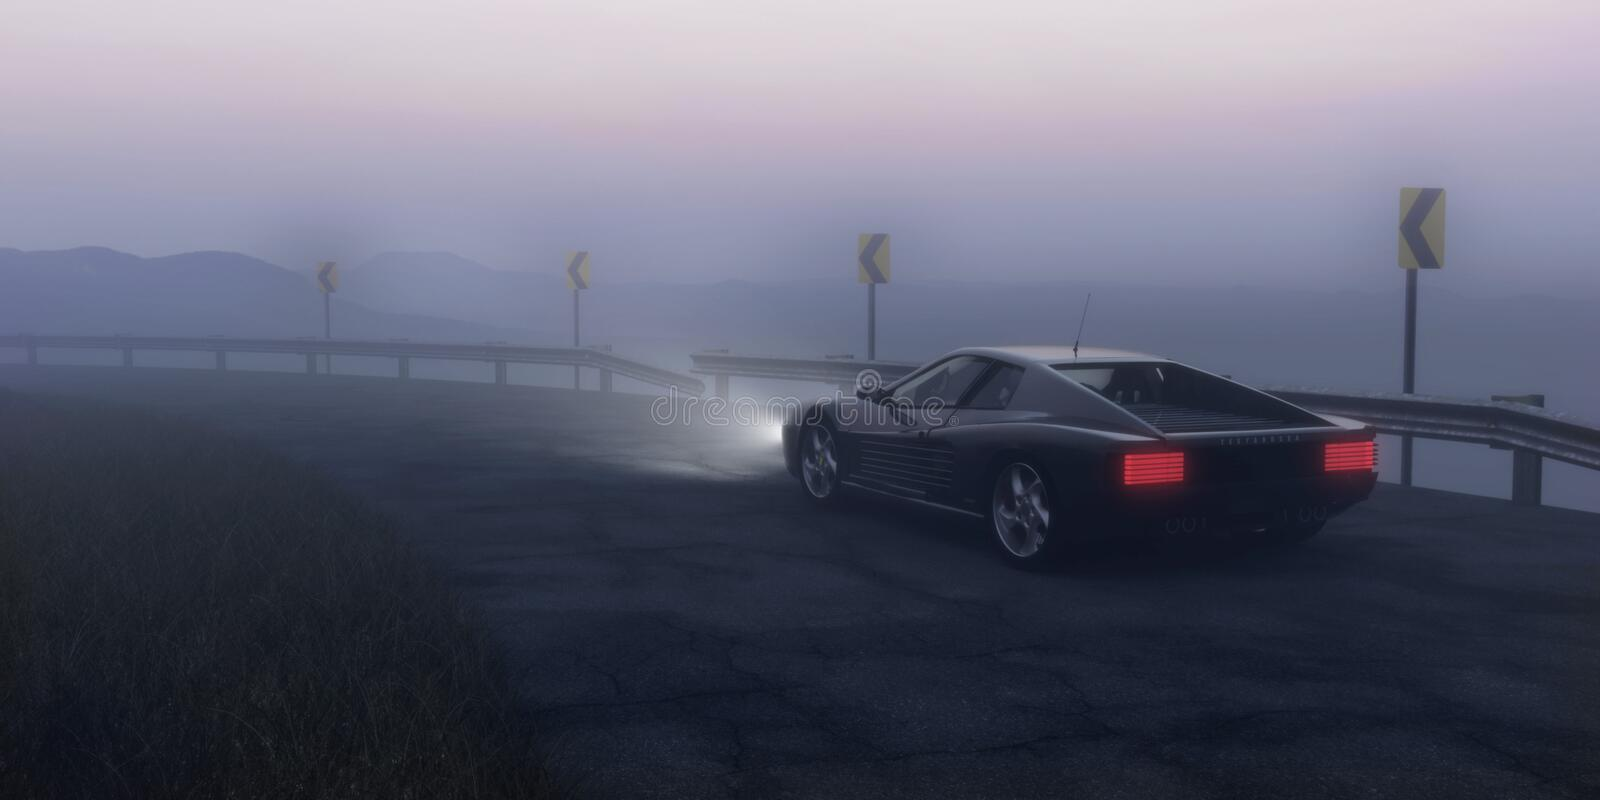 Black Coupe Parked on Concrete Road Near Body of Water royalty free stock photo